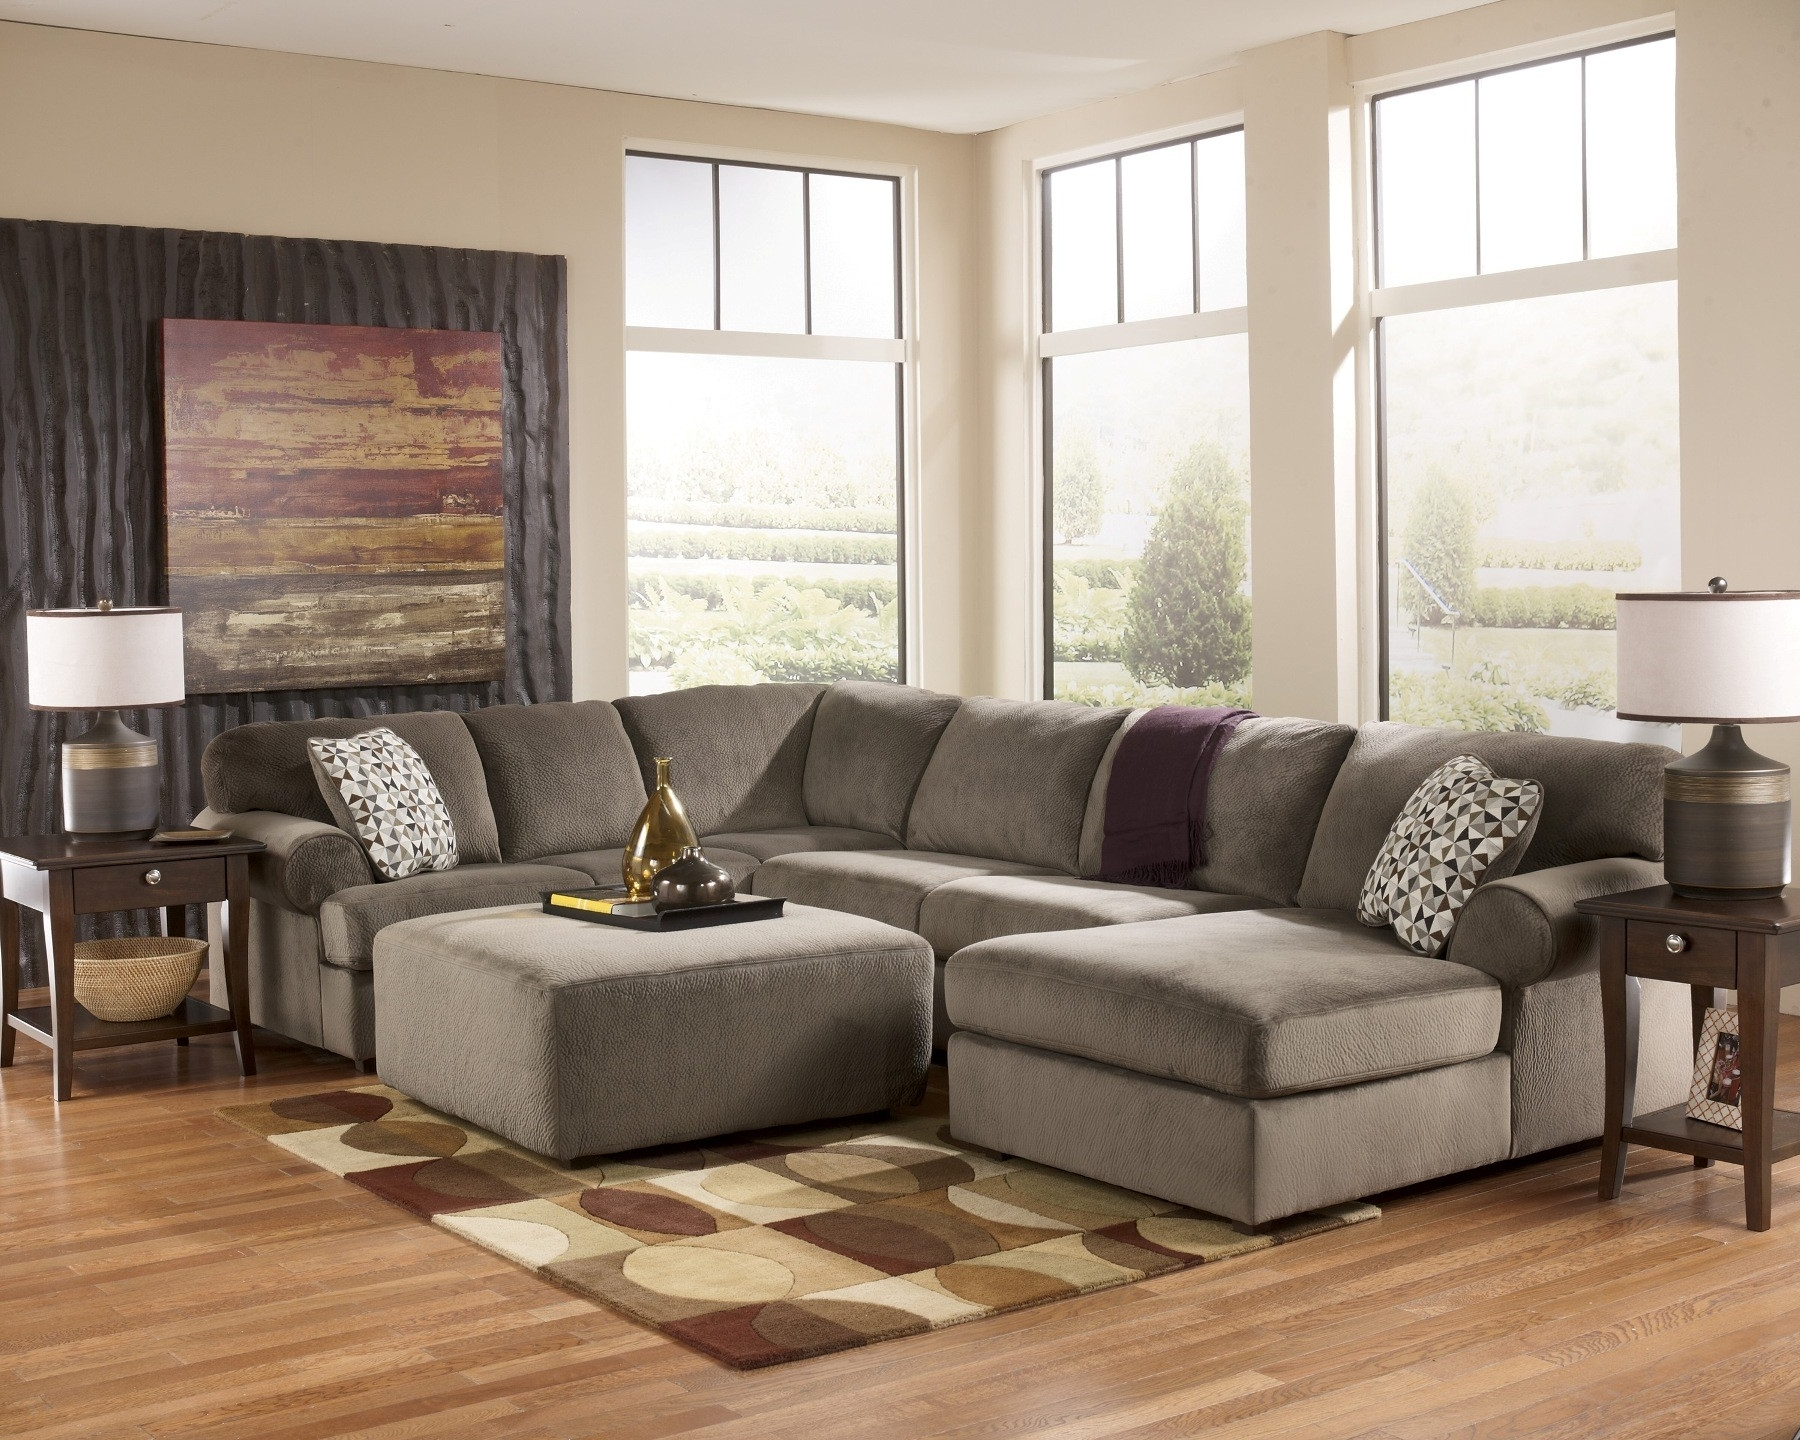 Most Recent El Paso Texas Sectional Sofas Inside Asc Furniture – El Paso, Tx (View 10 of 15)